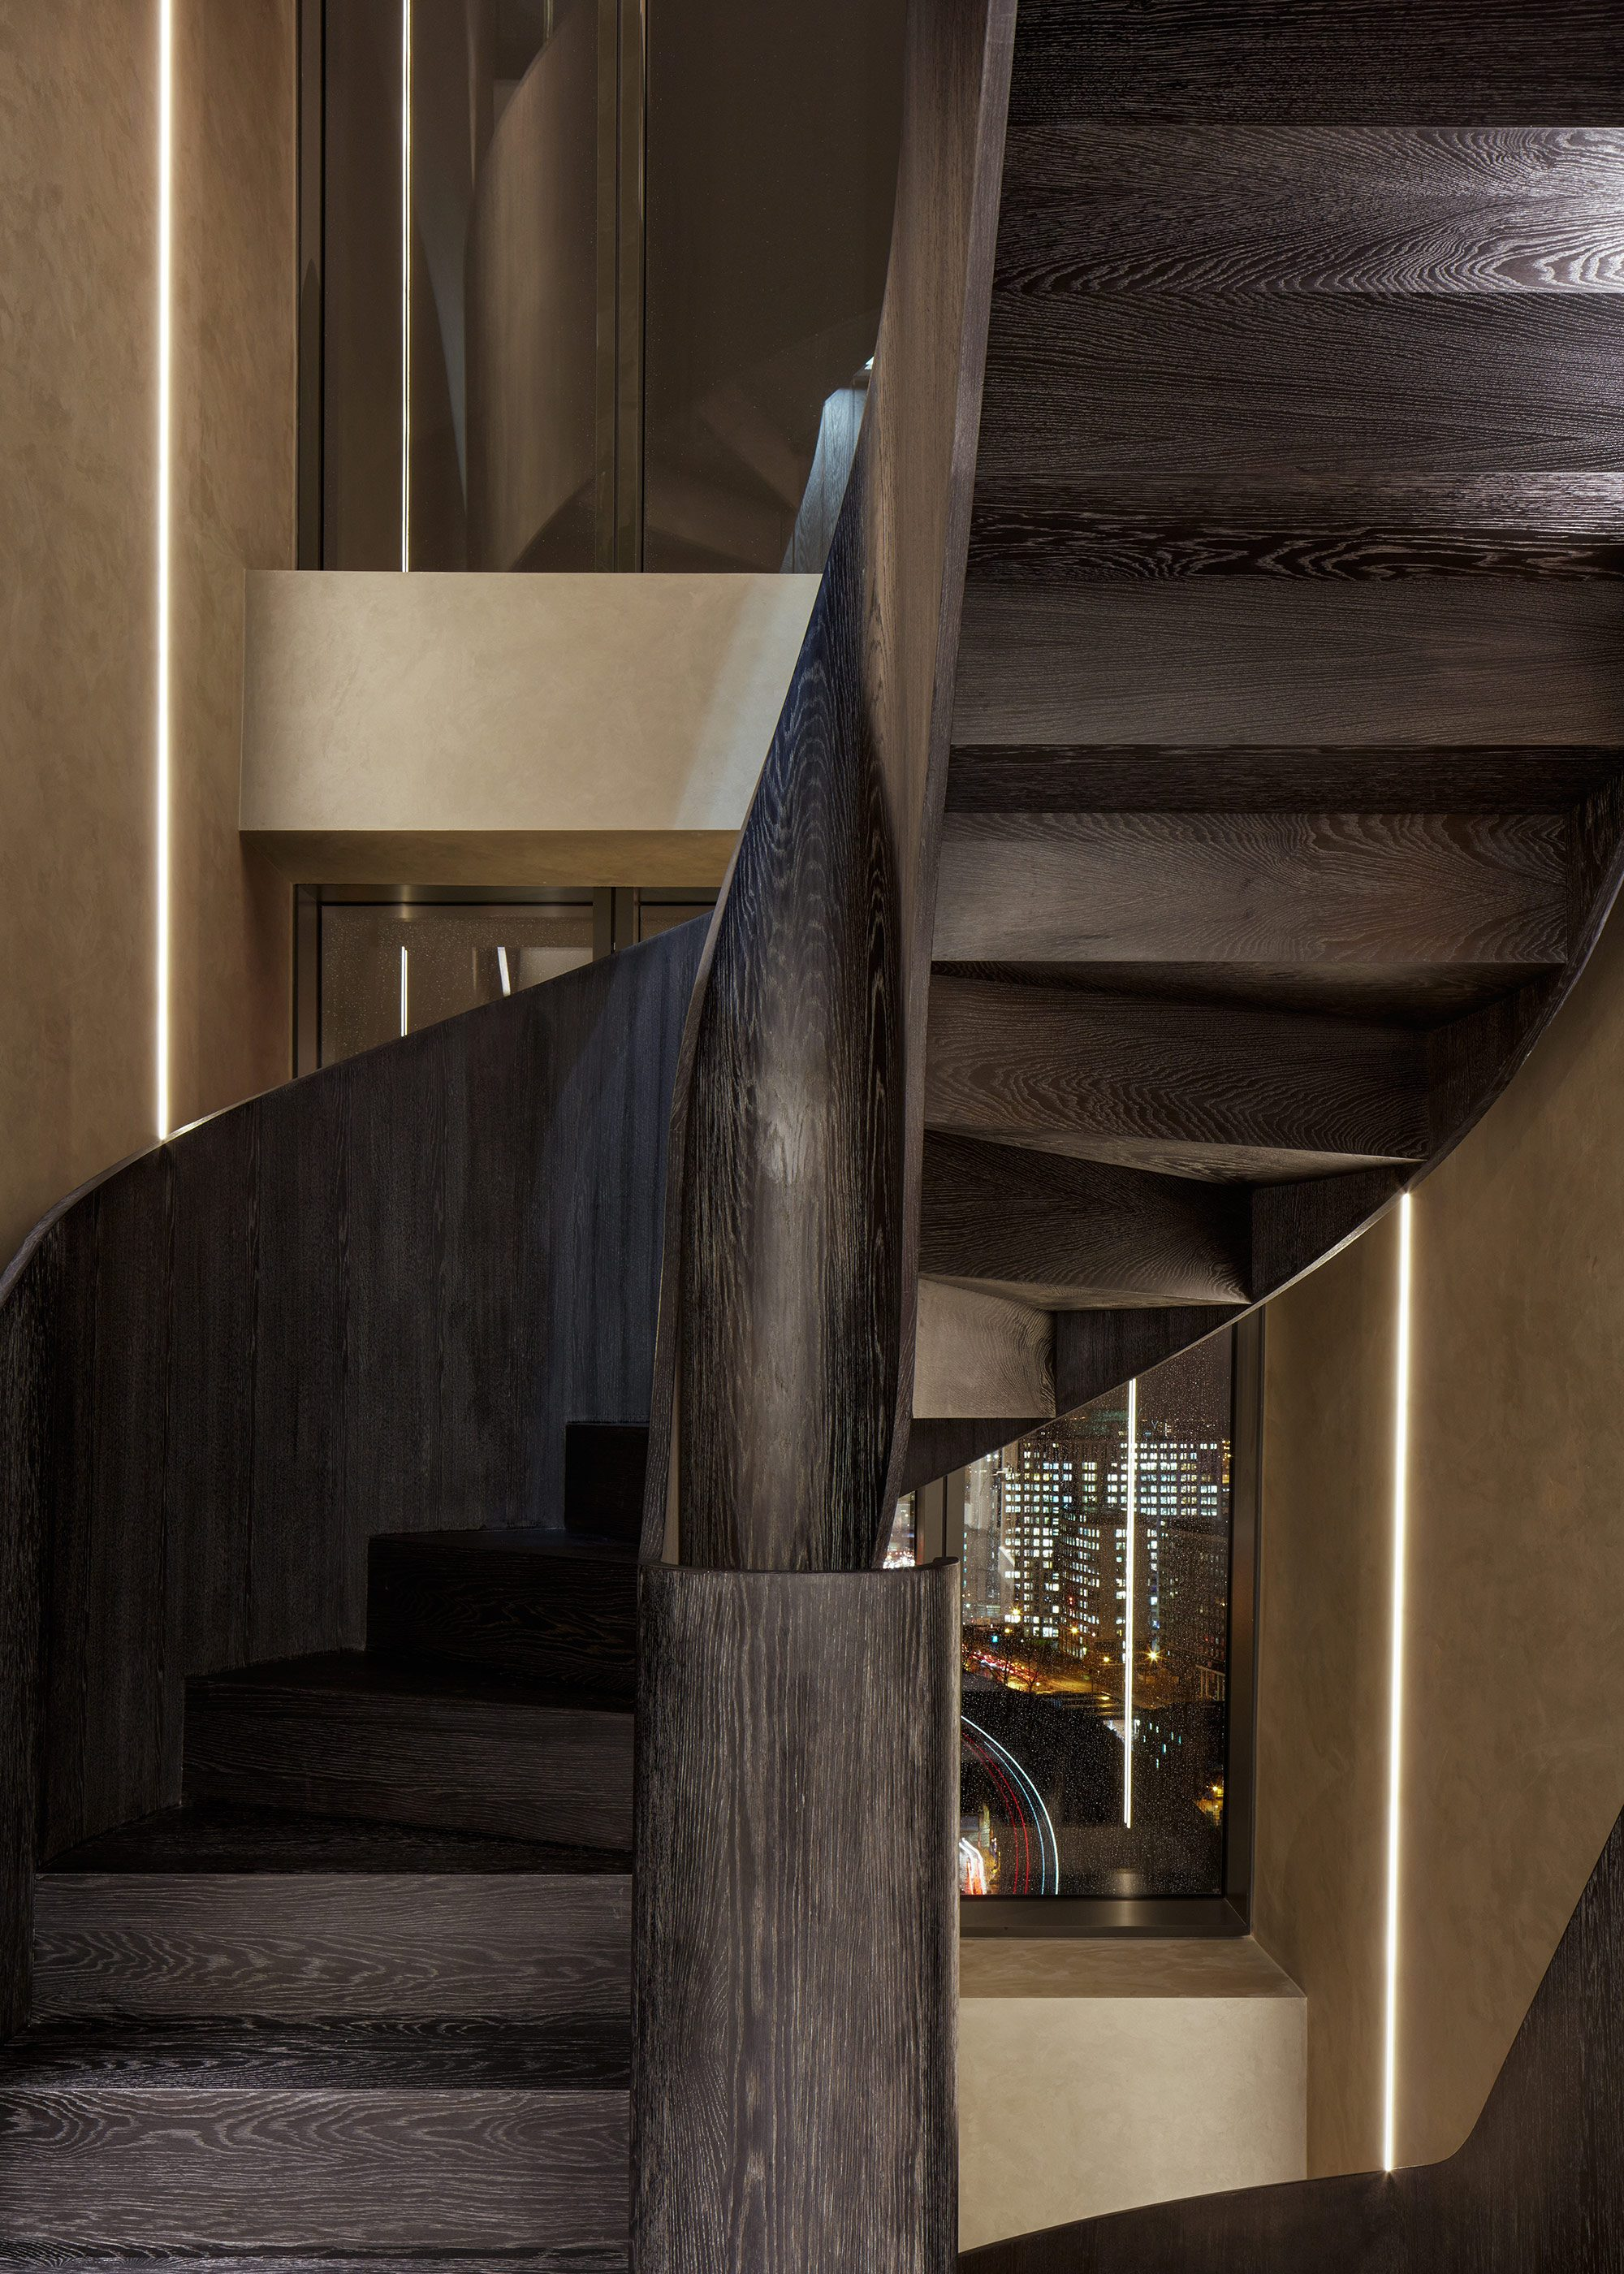 Honky Interior Design Parliament House London Stair Detail 2